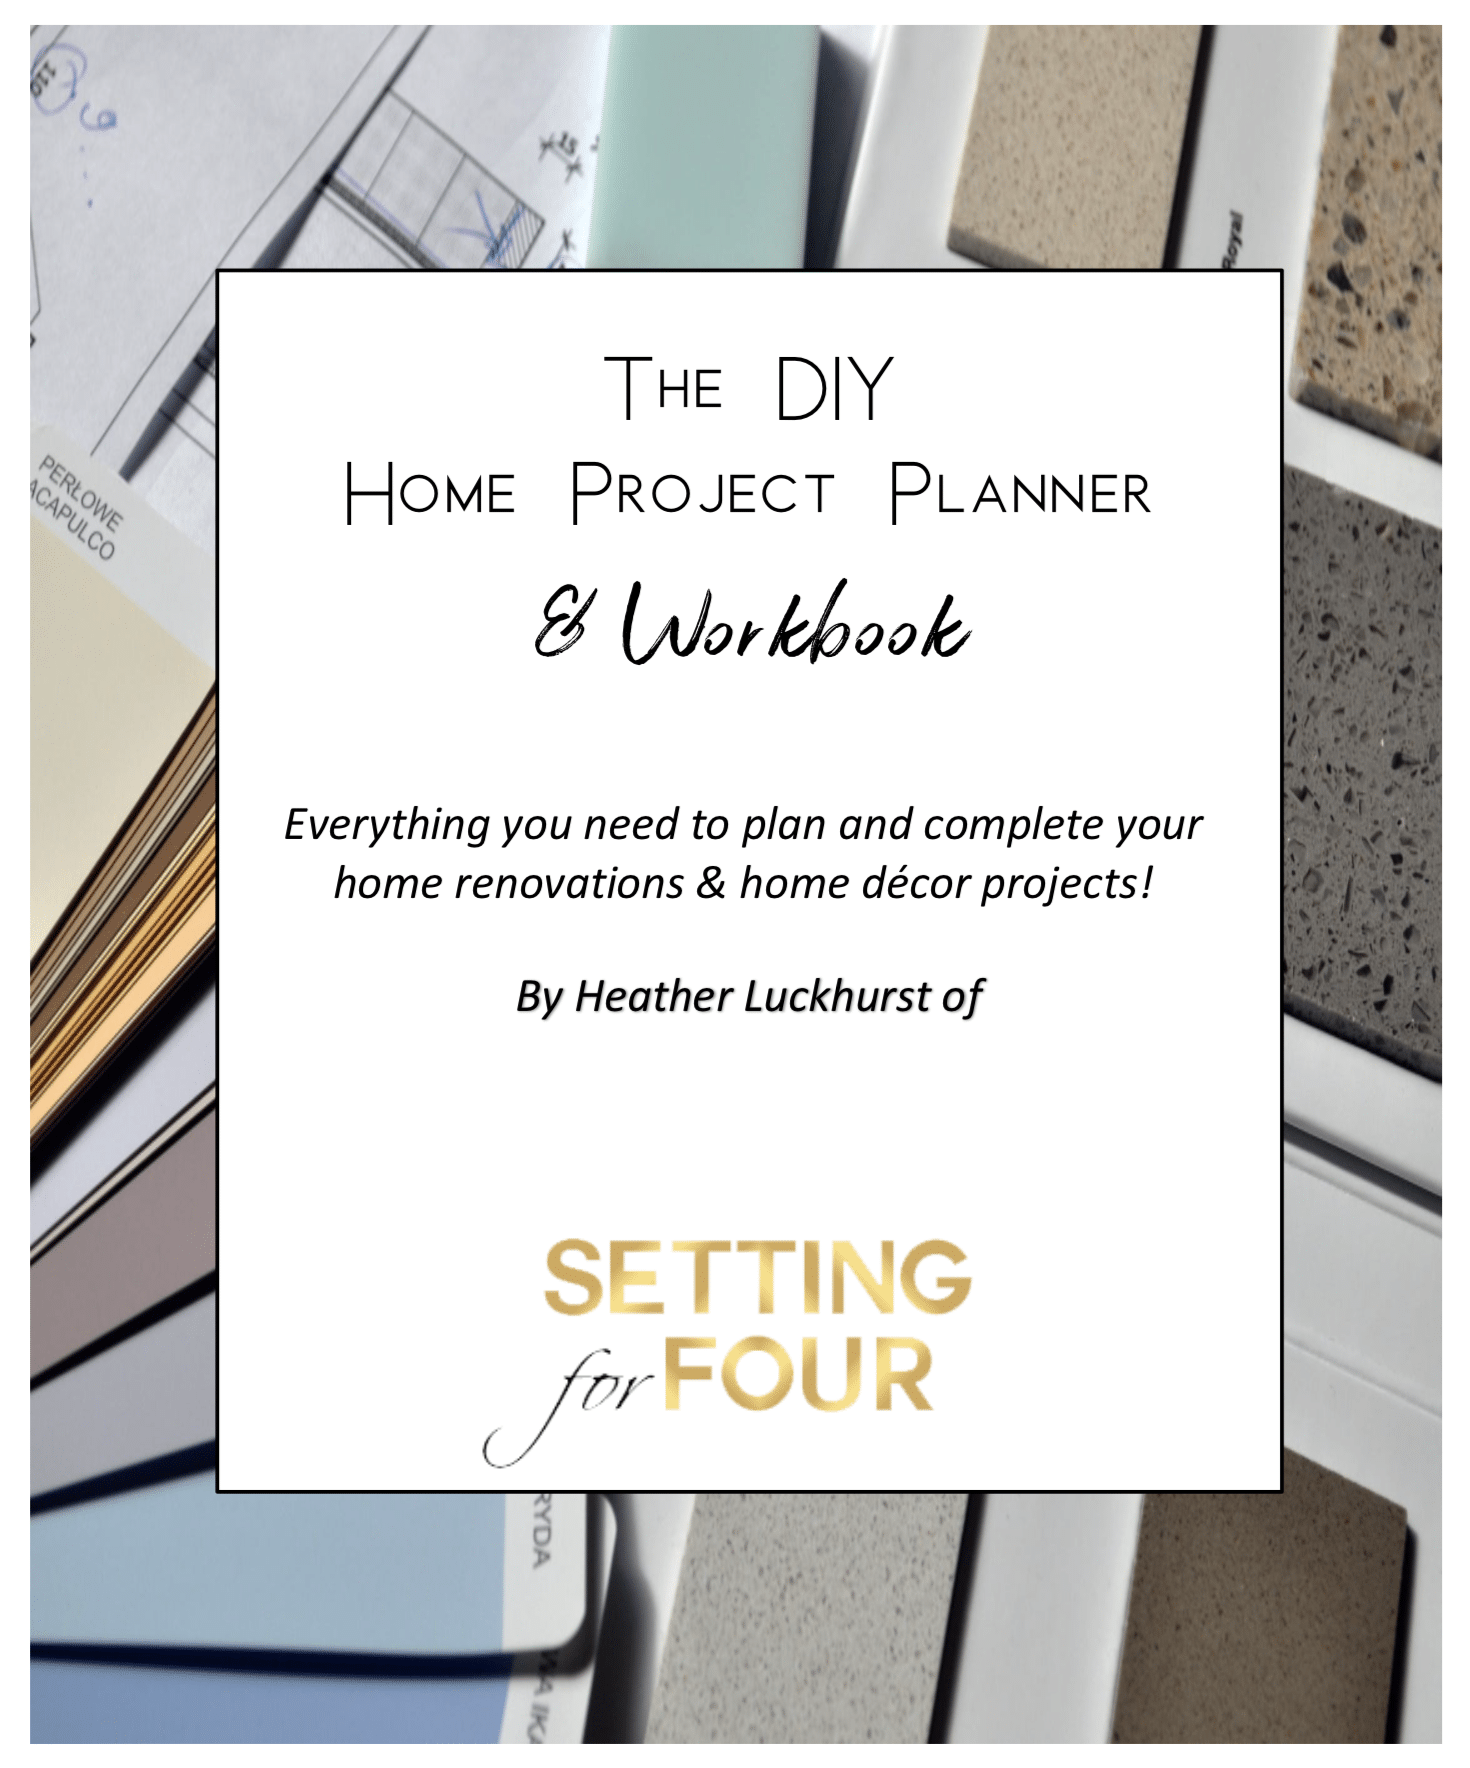 The Diy Home Project Planner Workbook Organizer 19 Pages